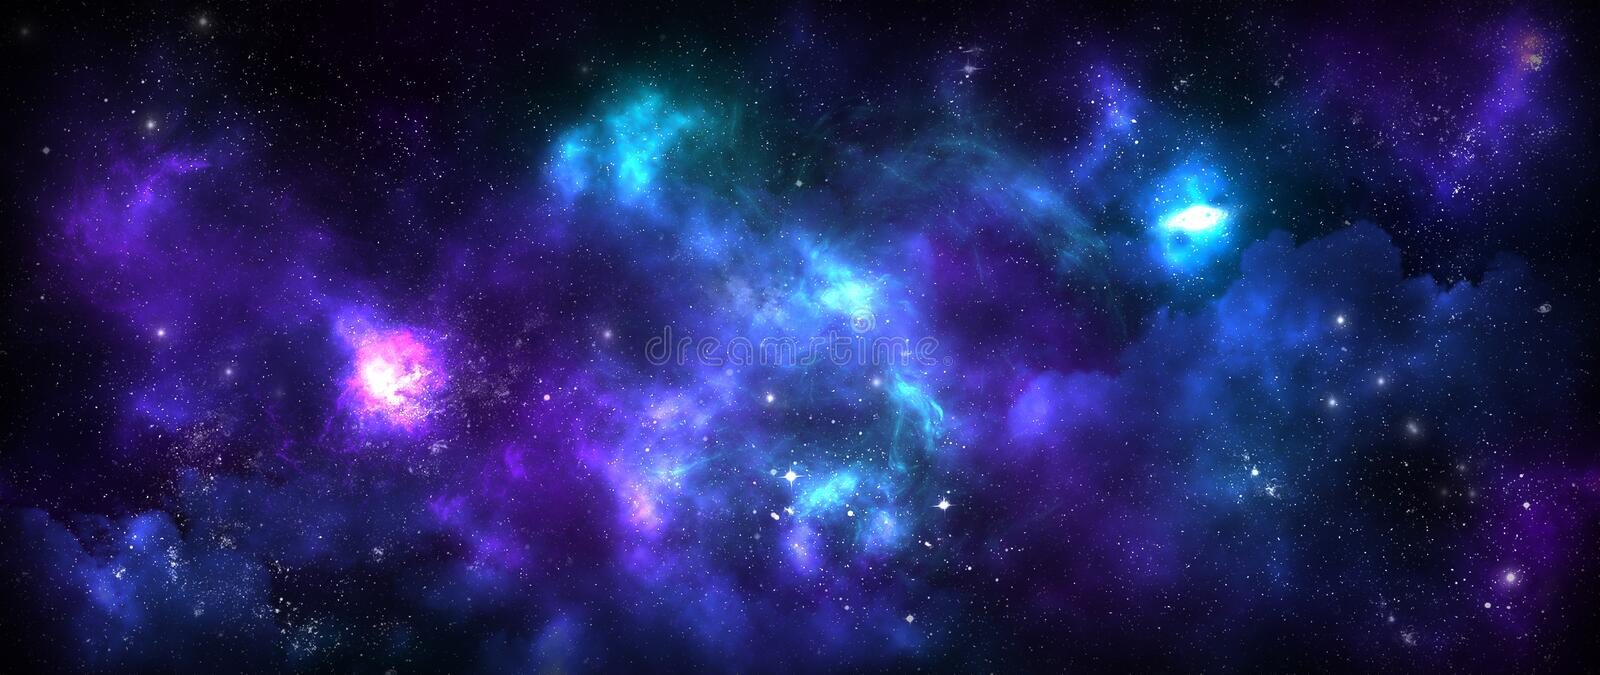 Starry sky full of galaxies. Stars and colored plasma nebulae stock illustration